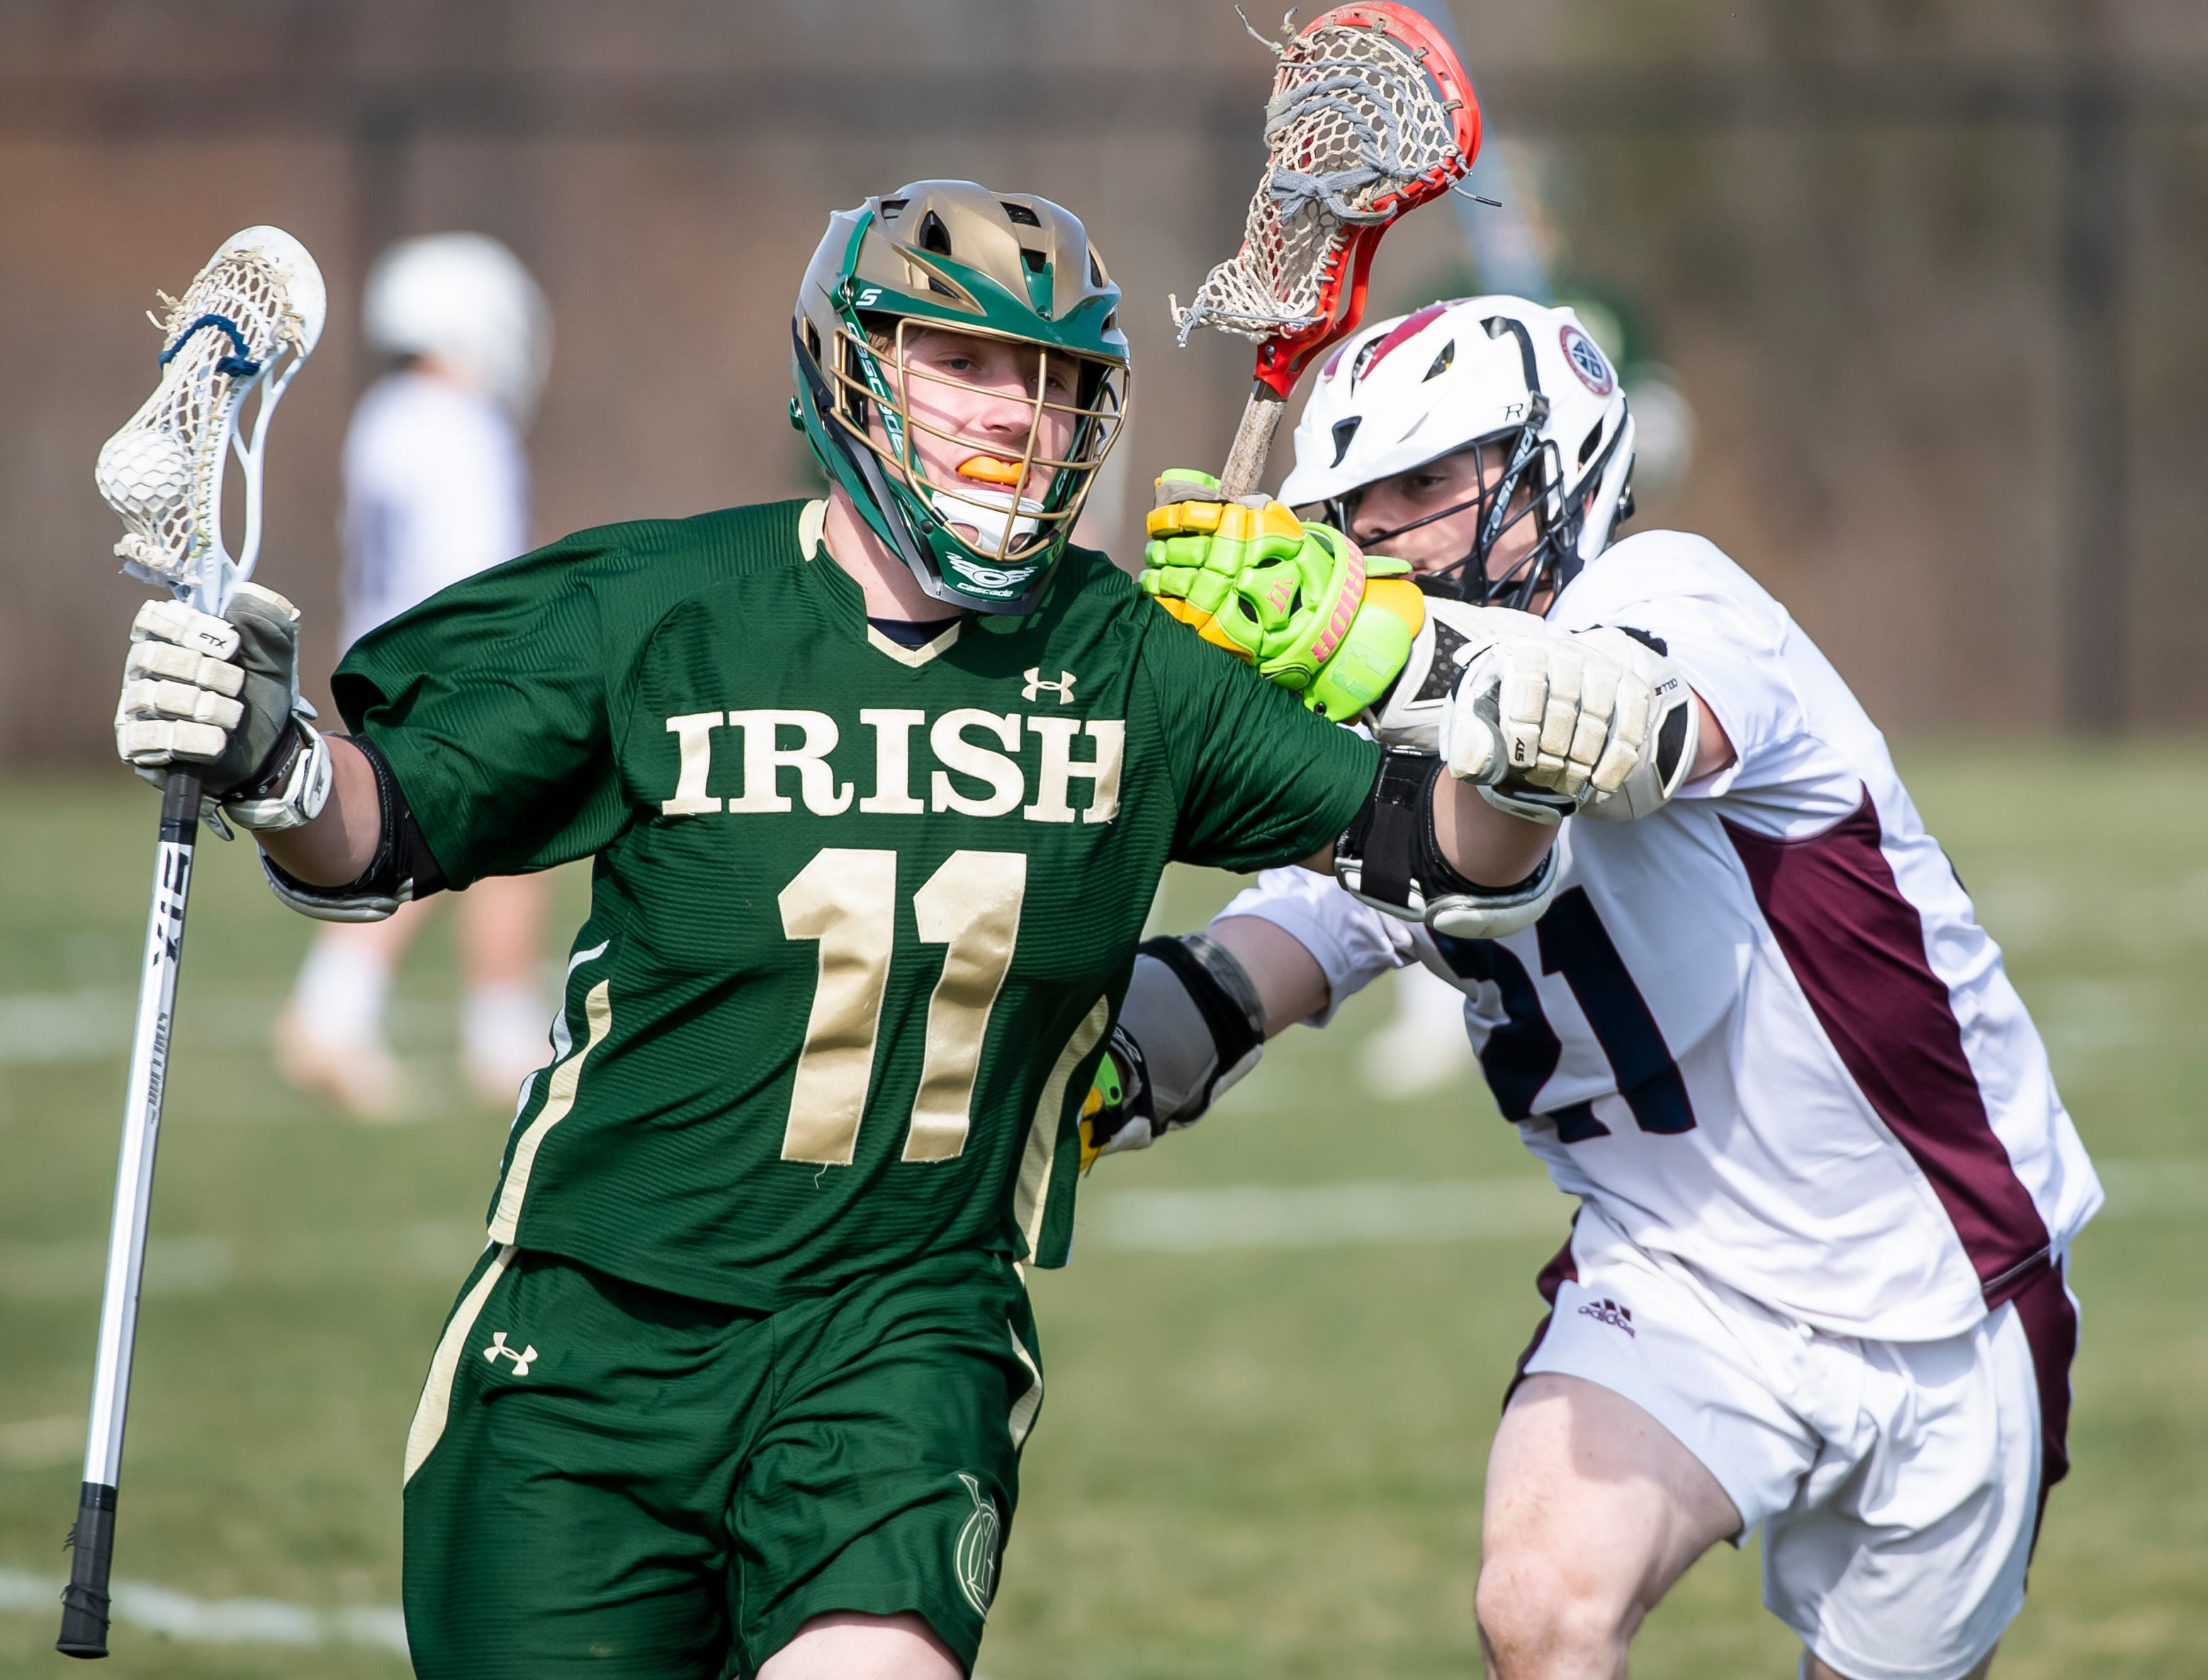 New Oxford's Dylan Forbes puts a check on York Catholic's Drew Snelbaker (11) during a YAIAA boys' lacrosse game against York Catholic on Thursday, April 4, 2019. York Catholic won 14-8.